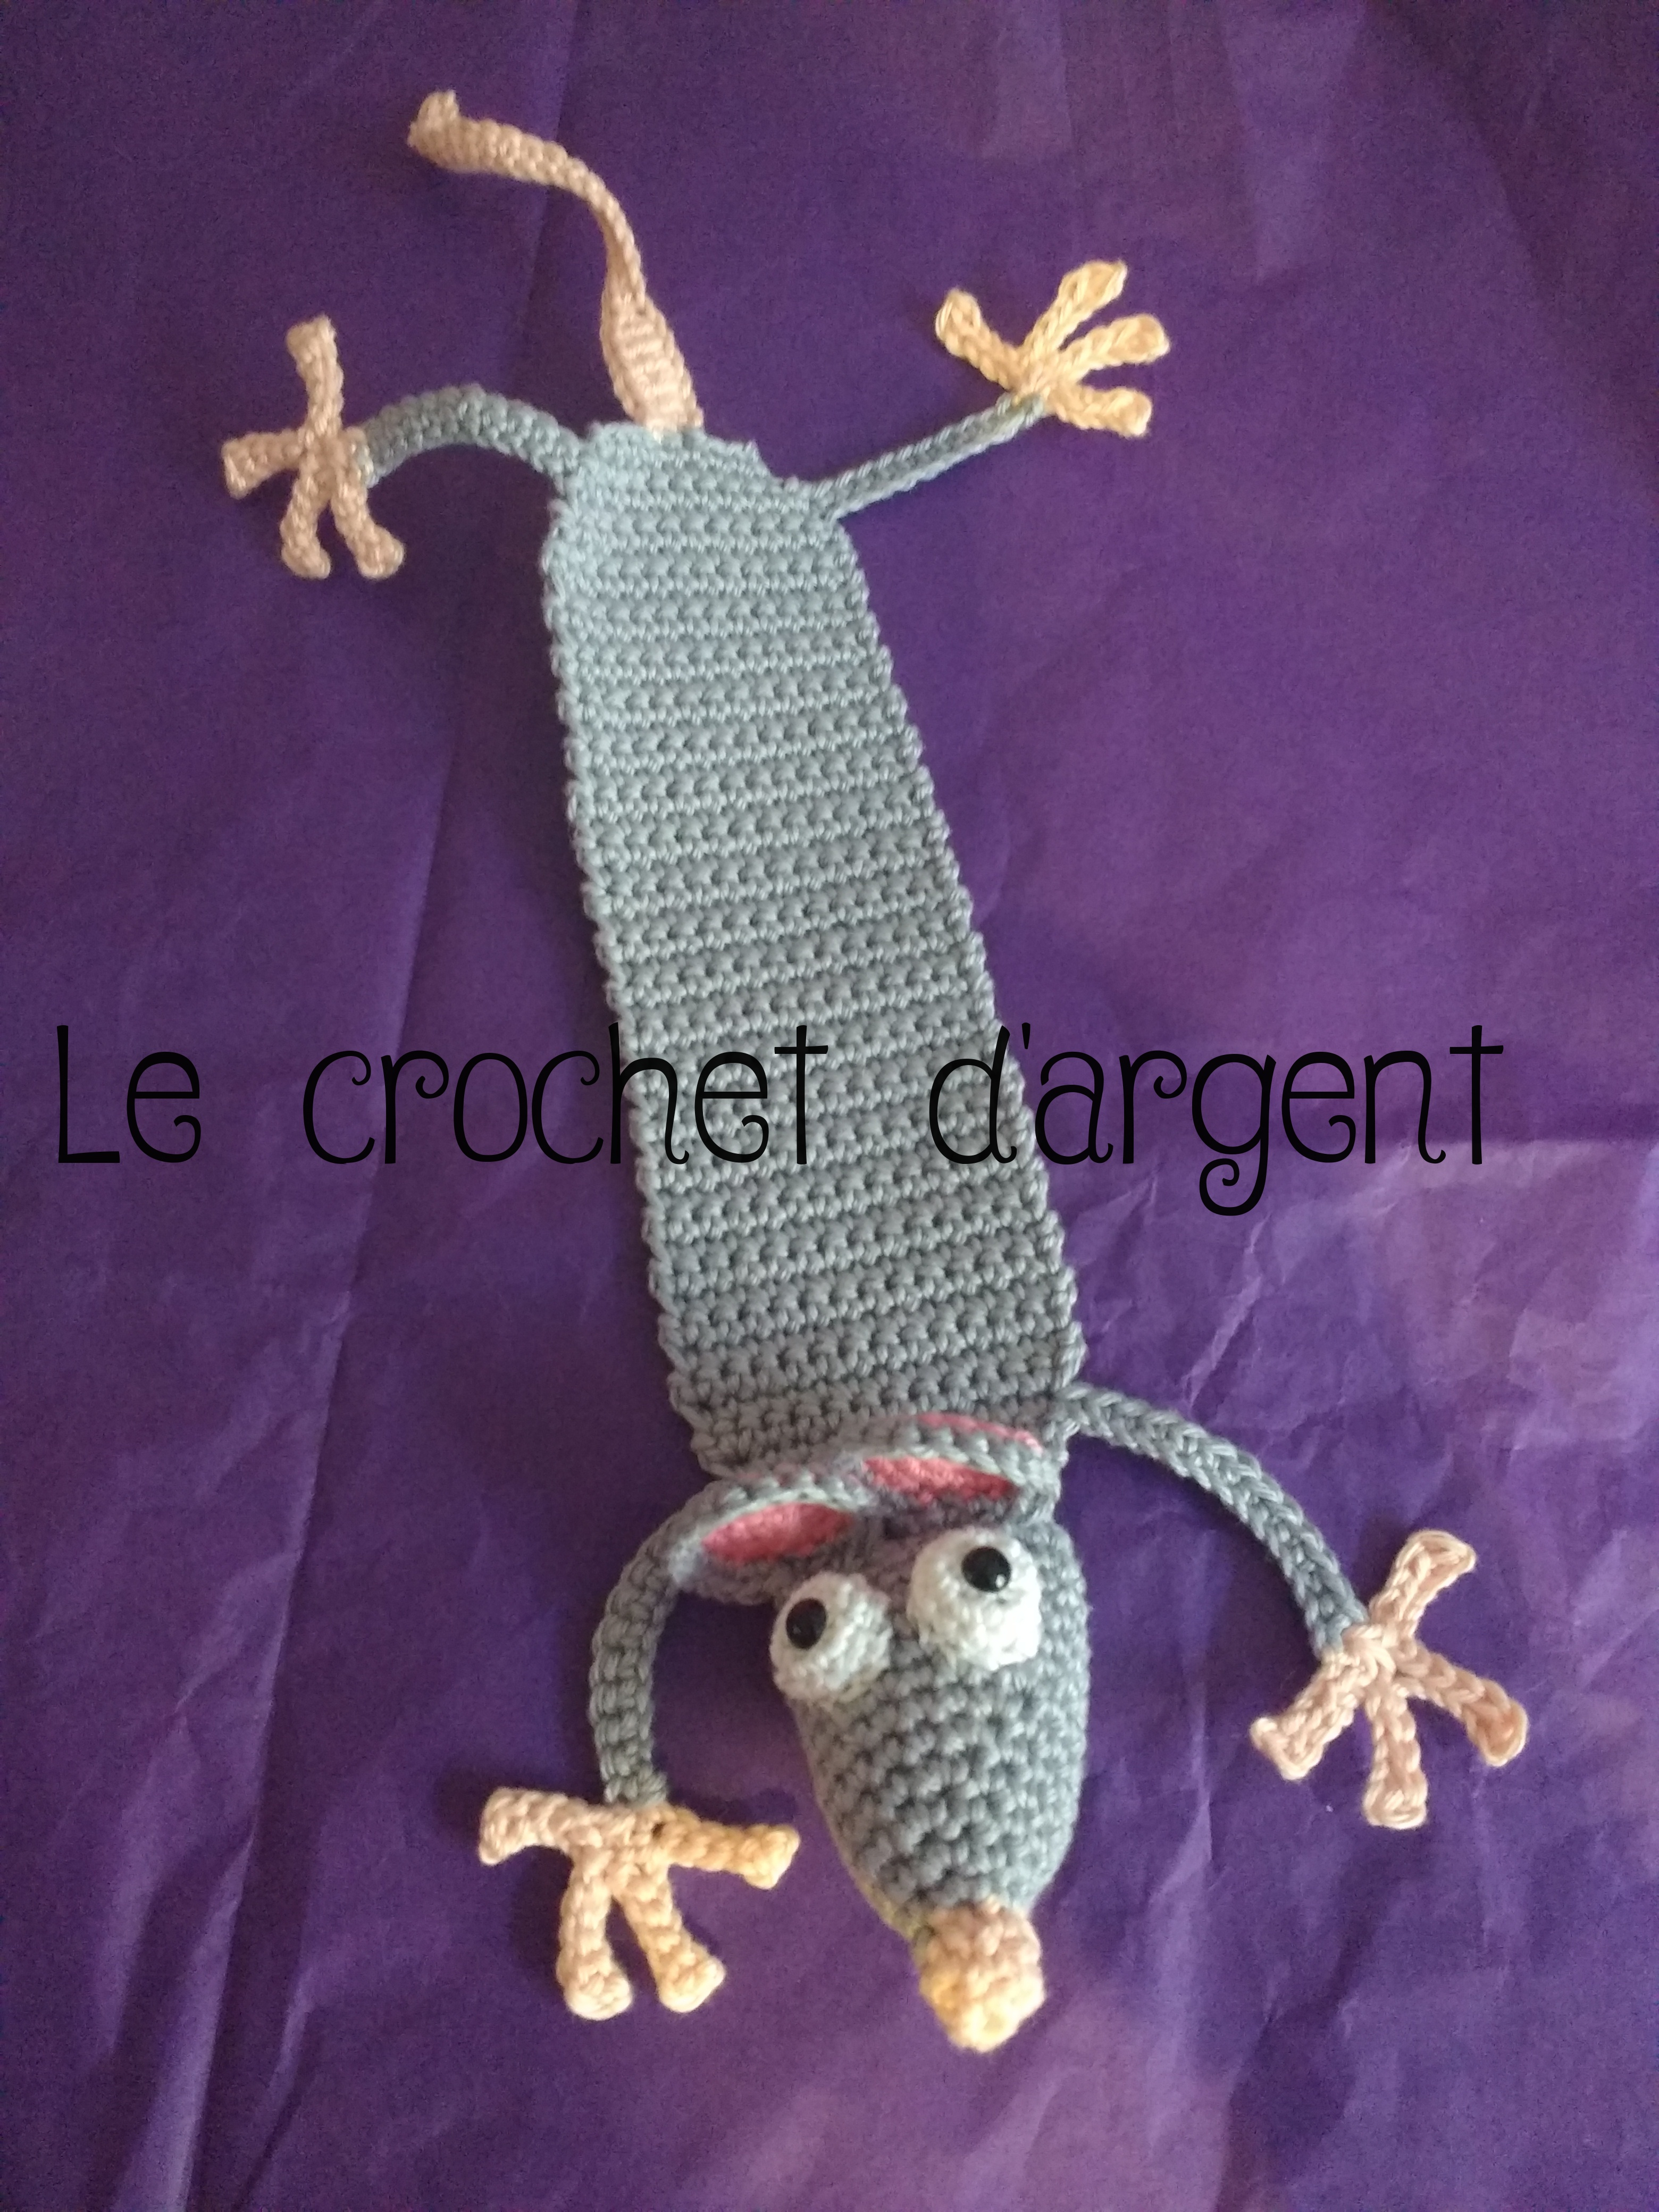 Amigurumi Crochet Rat Bookmark | Crochet bookmark pattern, Crochet ... | 4160x3120